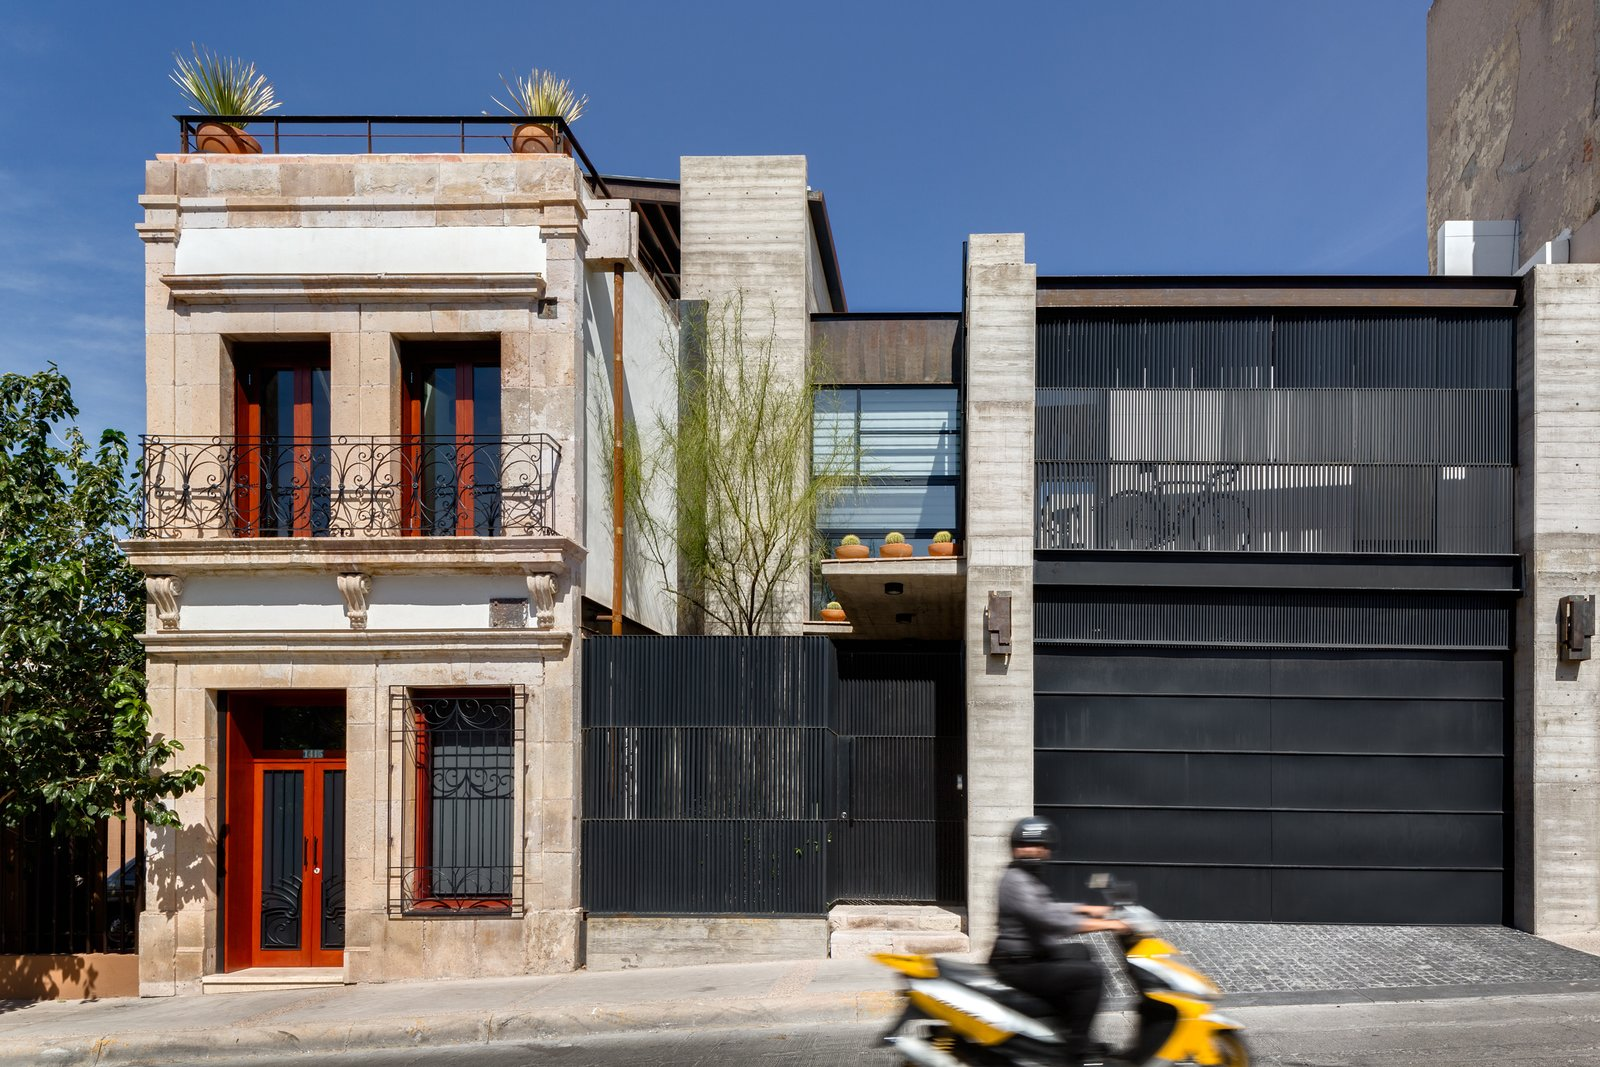 """The early-20th-century structure is seen next to the 300 square meter modern addition. A garage and patio were added, as well as a balcony that would complement the proportions of those in the original building. According to Quevedo, the biggest challenge was to approach both structures with a """"common language"""" and explore the idea that """"preservation and modernity can coexist.""""  Hybrid Home by Sarah Akkoush"""